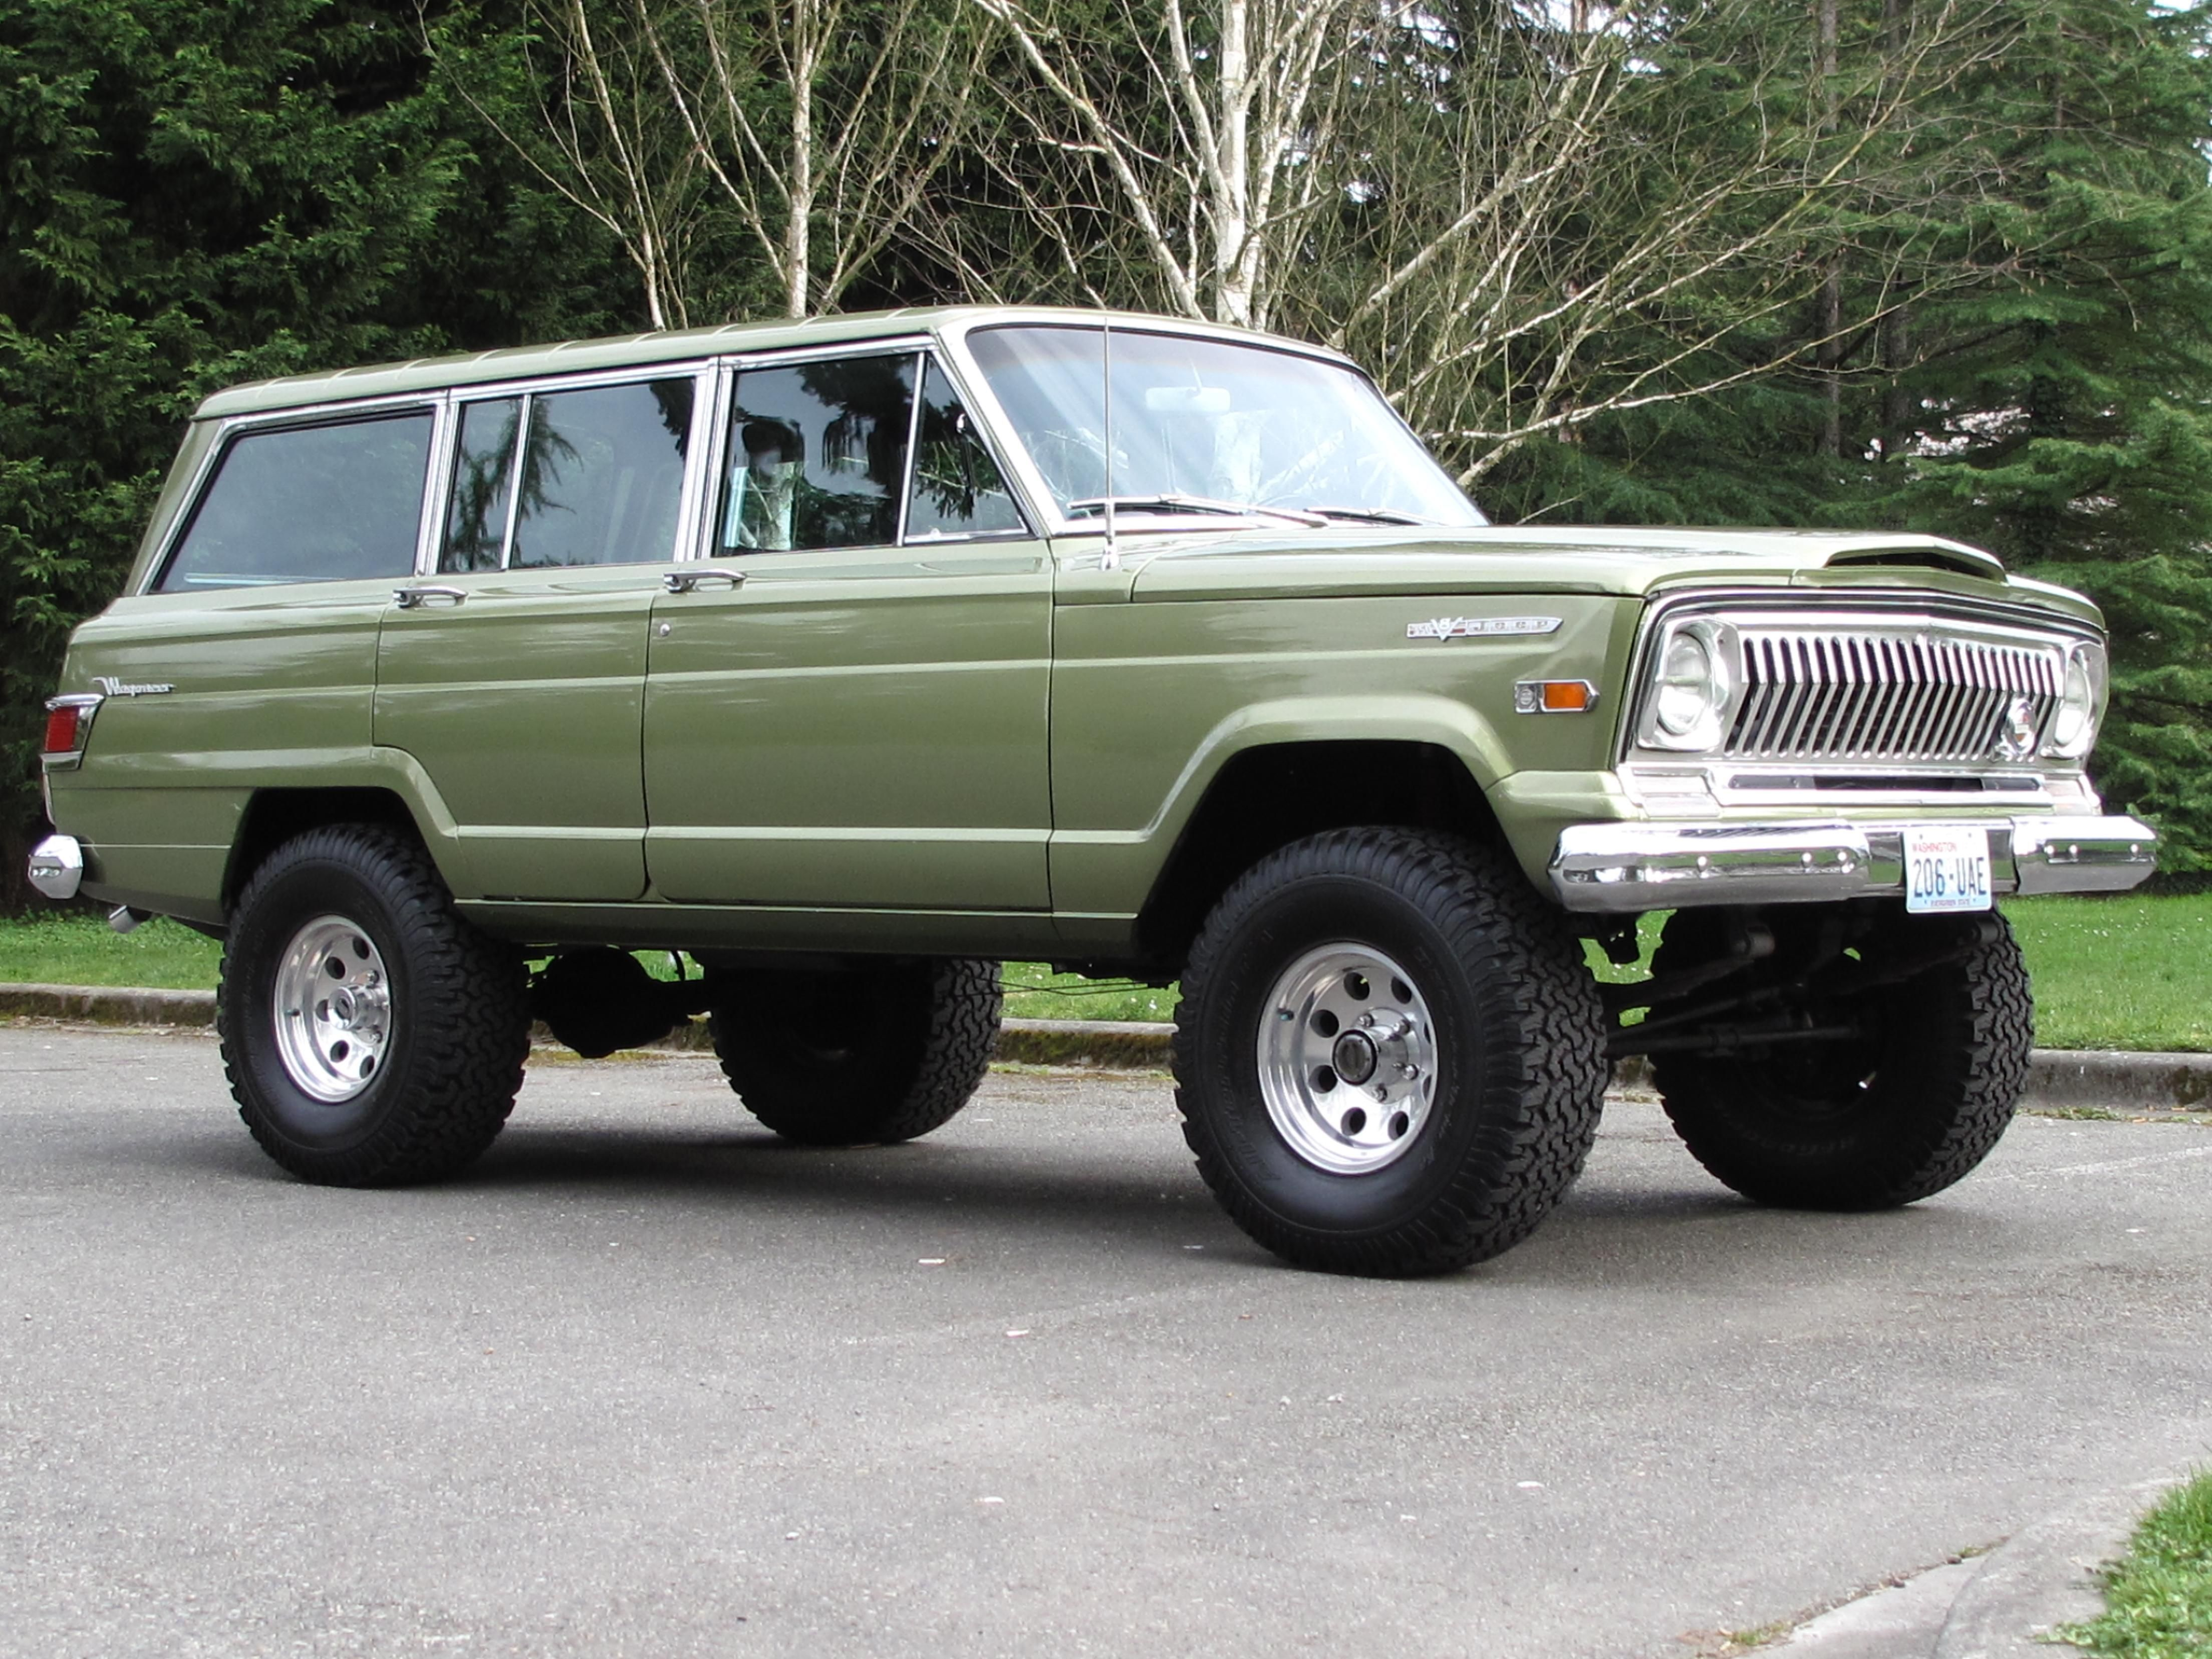 medium resolution of check out customized 70jeep s 1970 jeep wagoneer photos parts specs modification for sale information and follow 70jeep in seattle wa for any latest